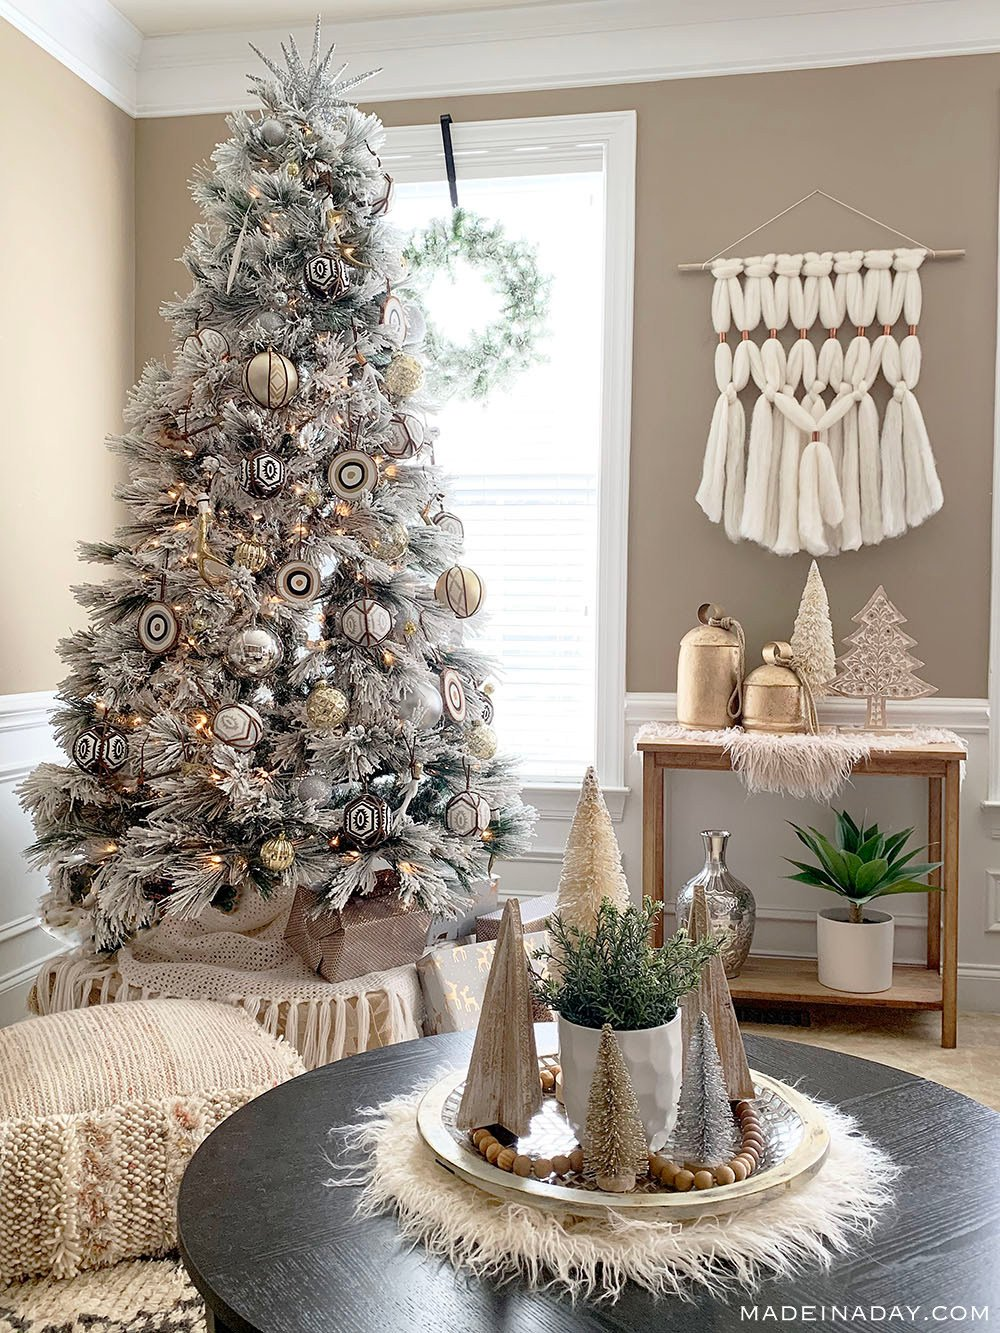 Rustic Bohemian Holiday Home Tour